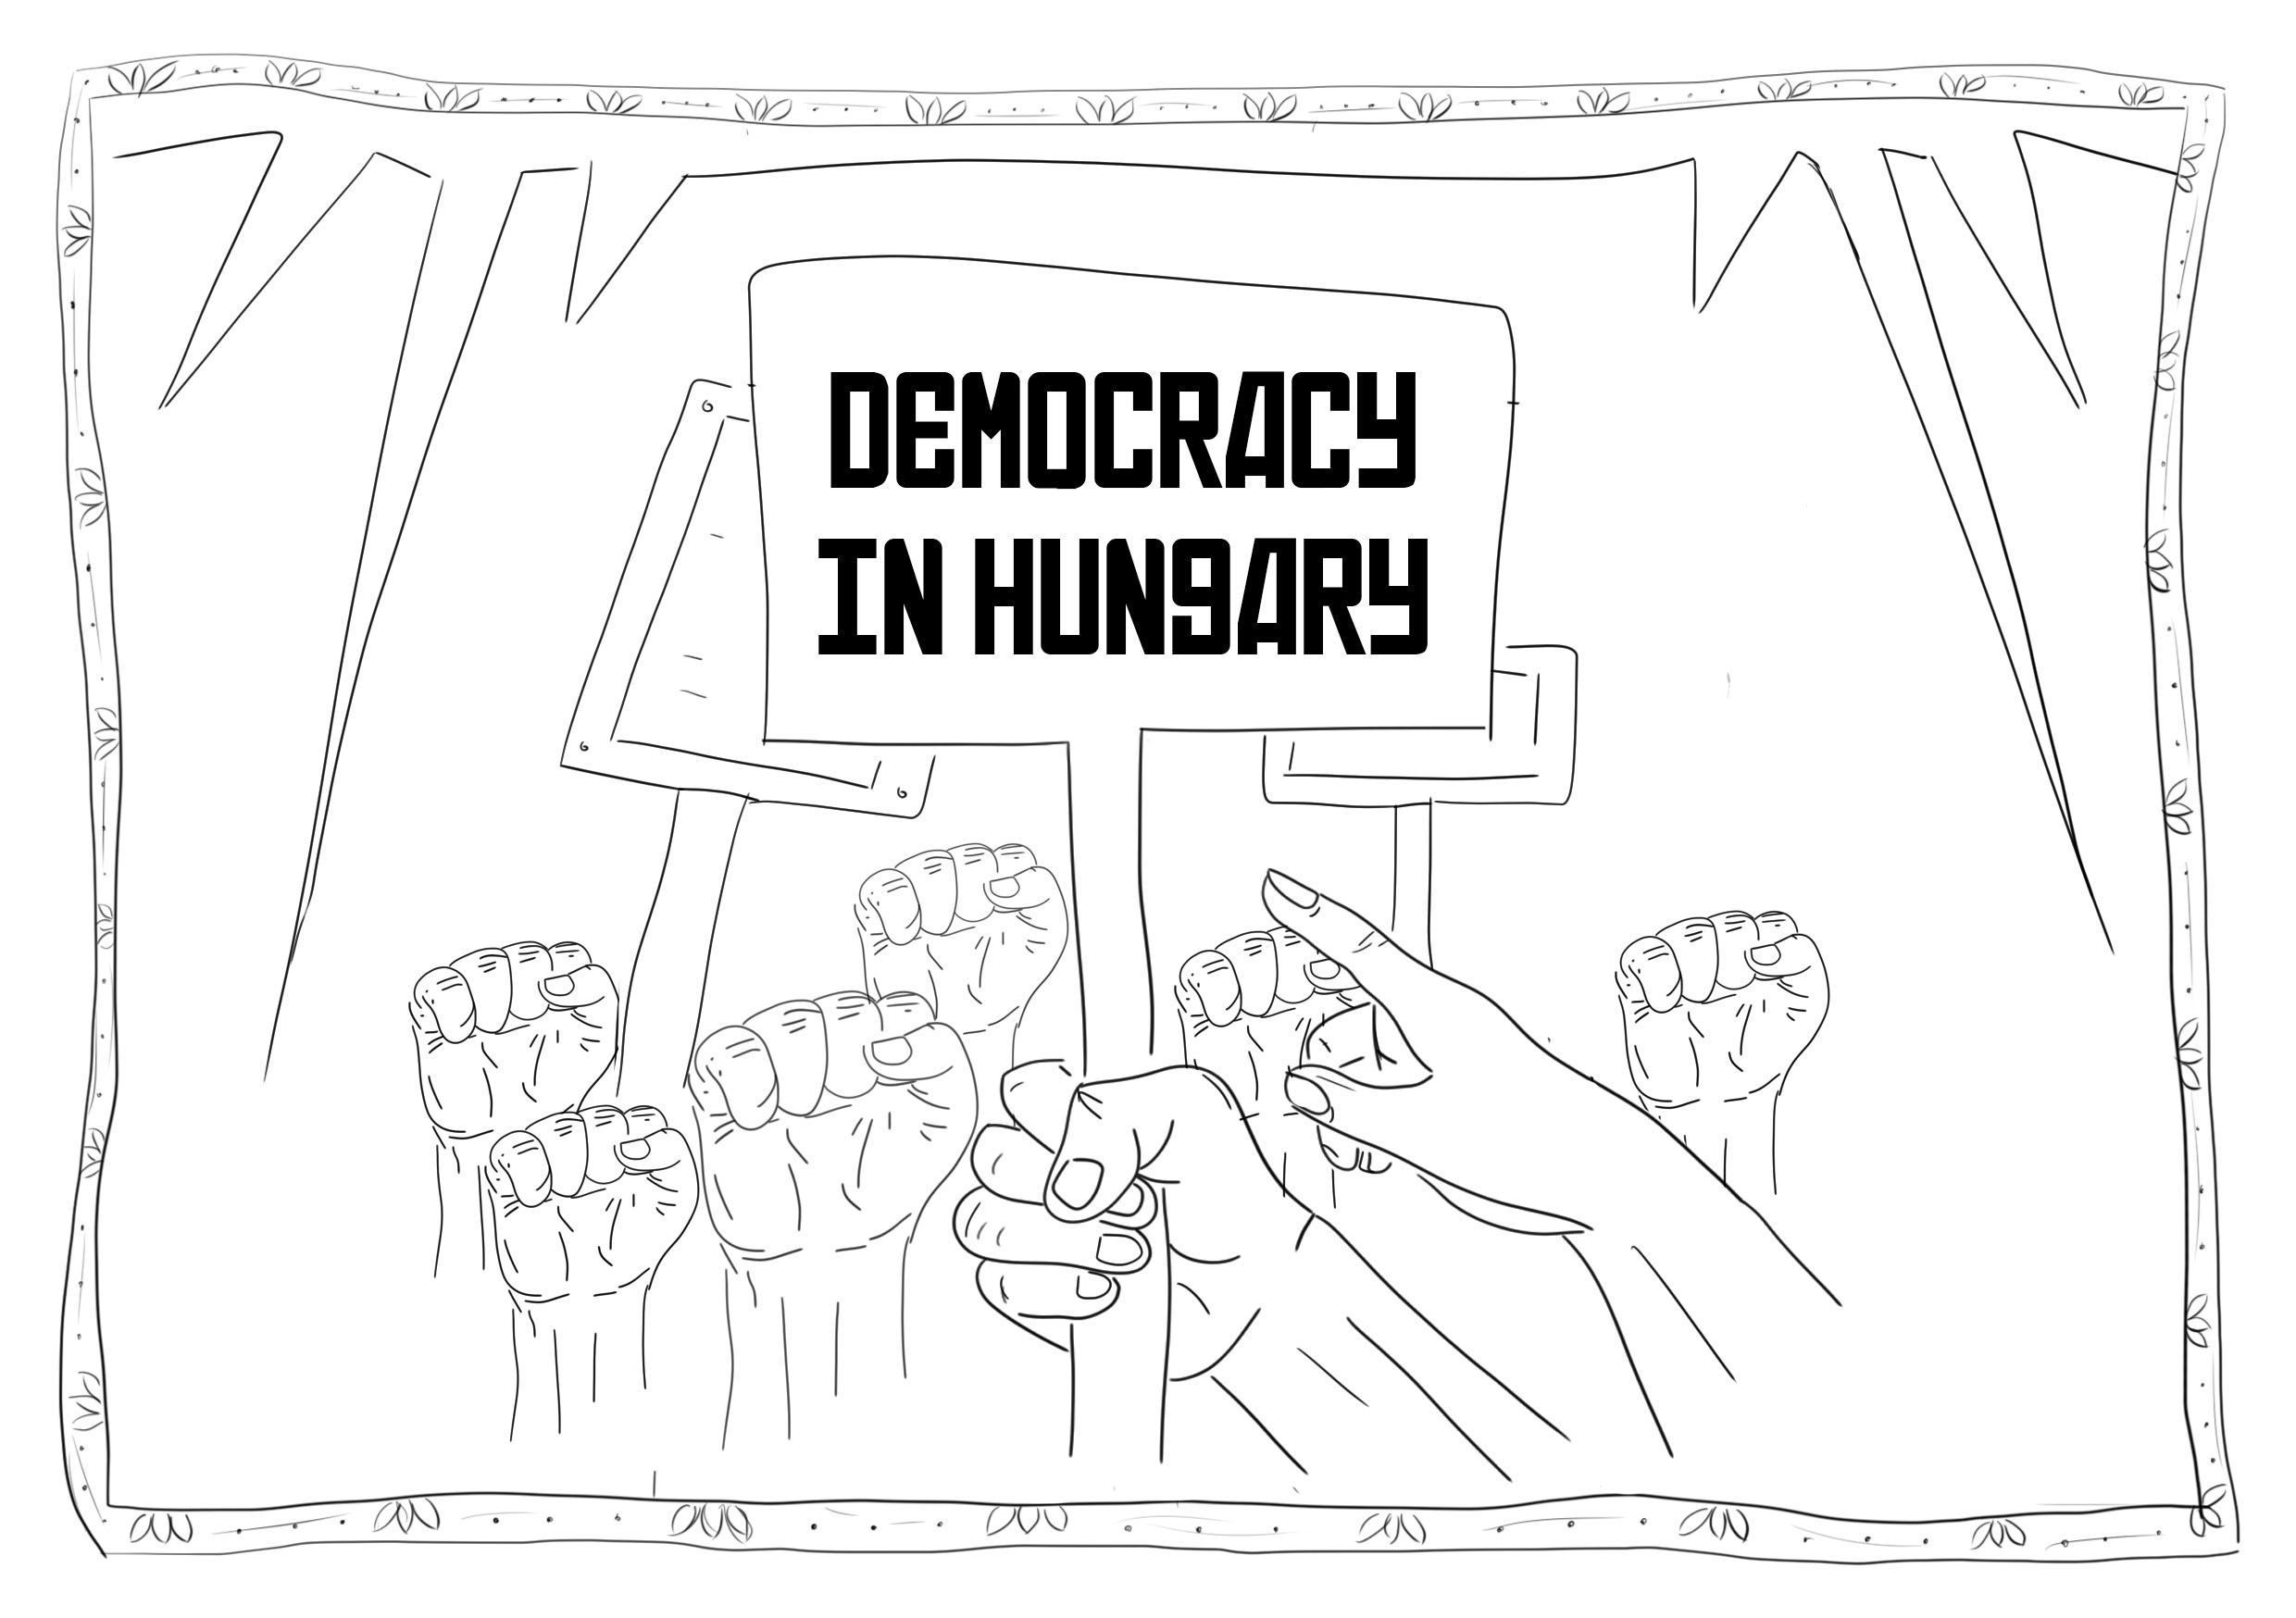 Illustration by Teddy - for Are We Europe